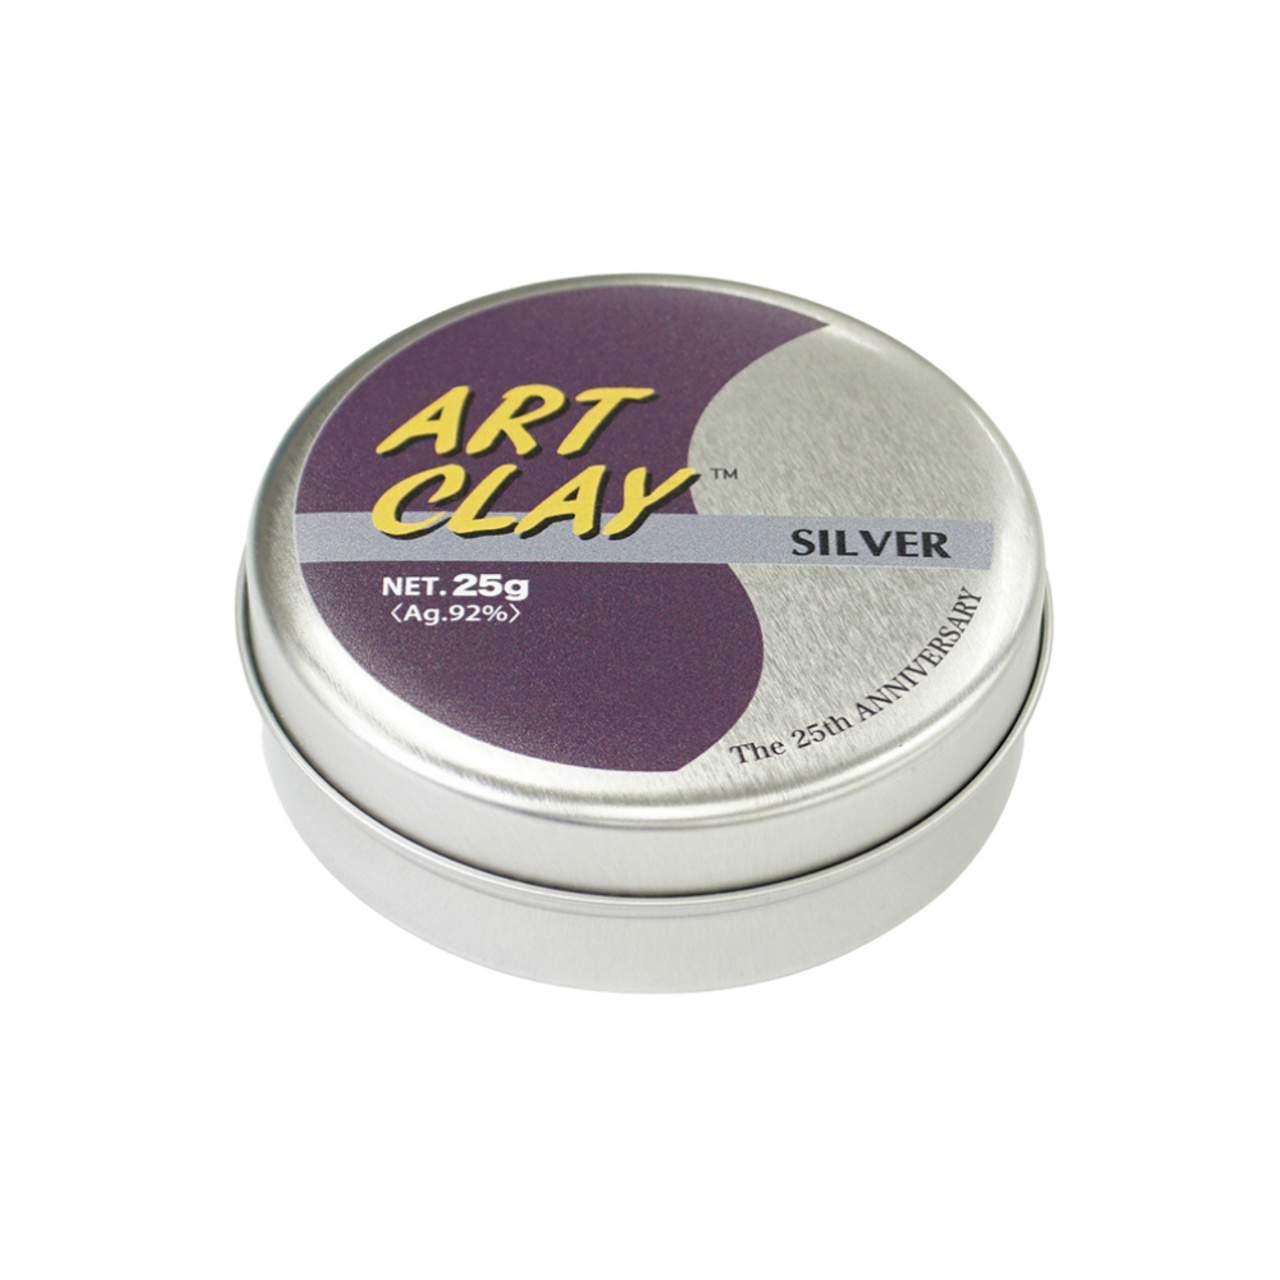 Purple tin. Happy 25th Anniversary Art Clay! Get your collectible limited edition tins with 25gm Art Clay Silver.